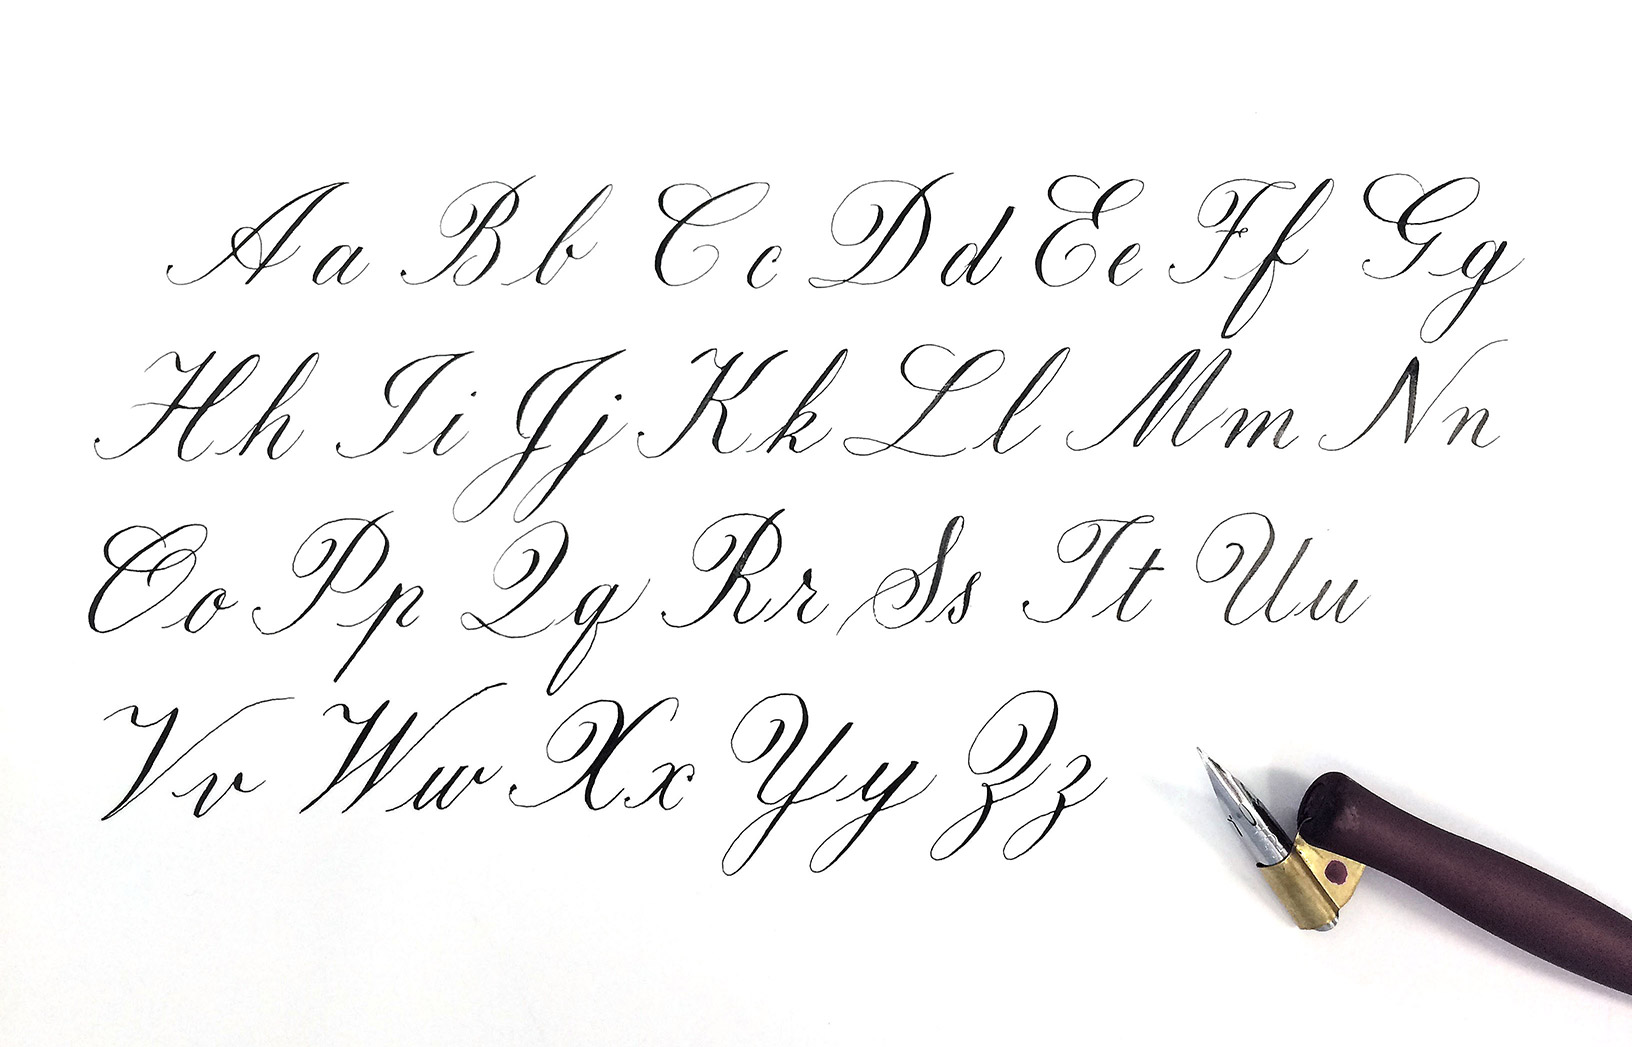 Copperplate Calligraphy Font Free A Quick History Of Copperplate Calligraphy Typerie